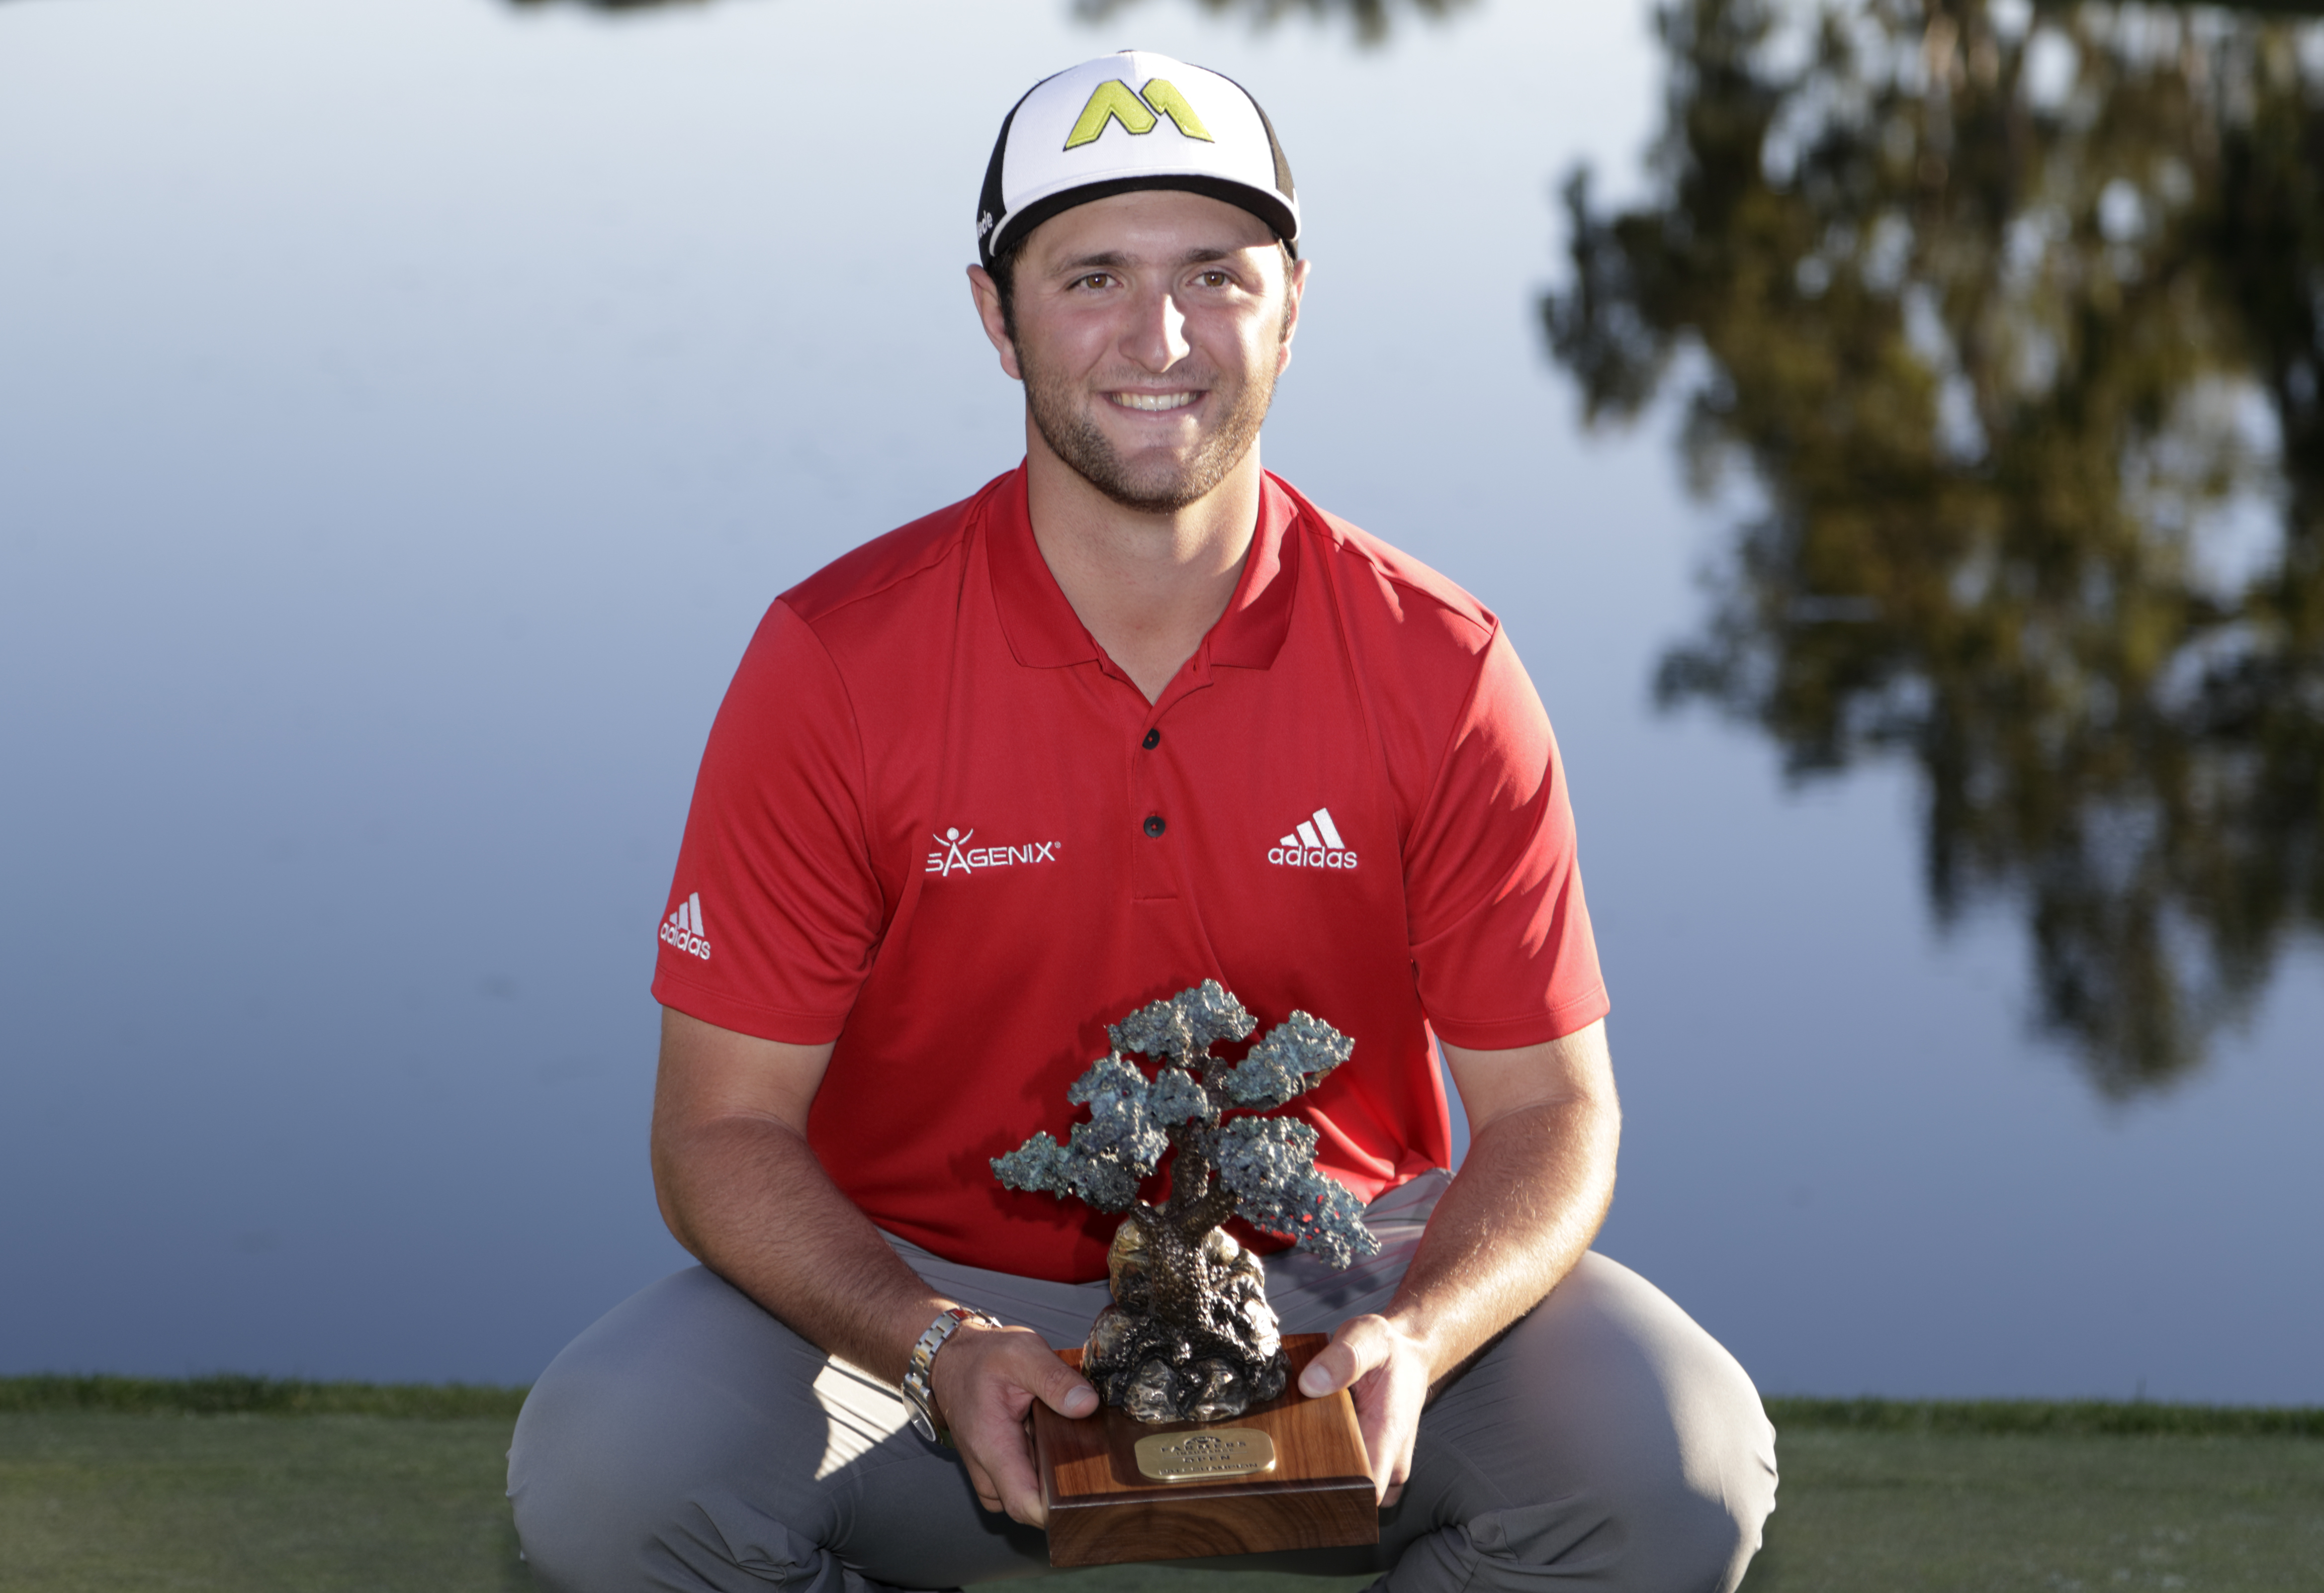 Jon Rahm, of Spain, holds the trophy after winning the Farmers Insurance Open golf tournament Sunday, Jan. 29, 2017, at Torrey Pines Golf Course in San Diego. (AP Photo/Gregory Bull)